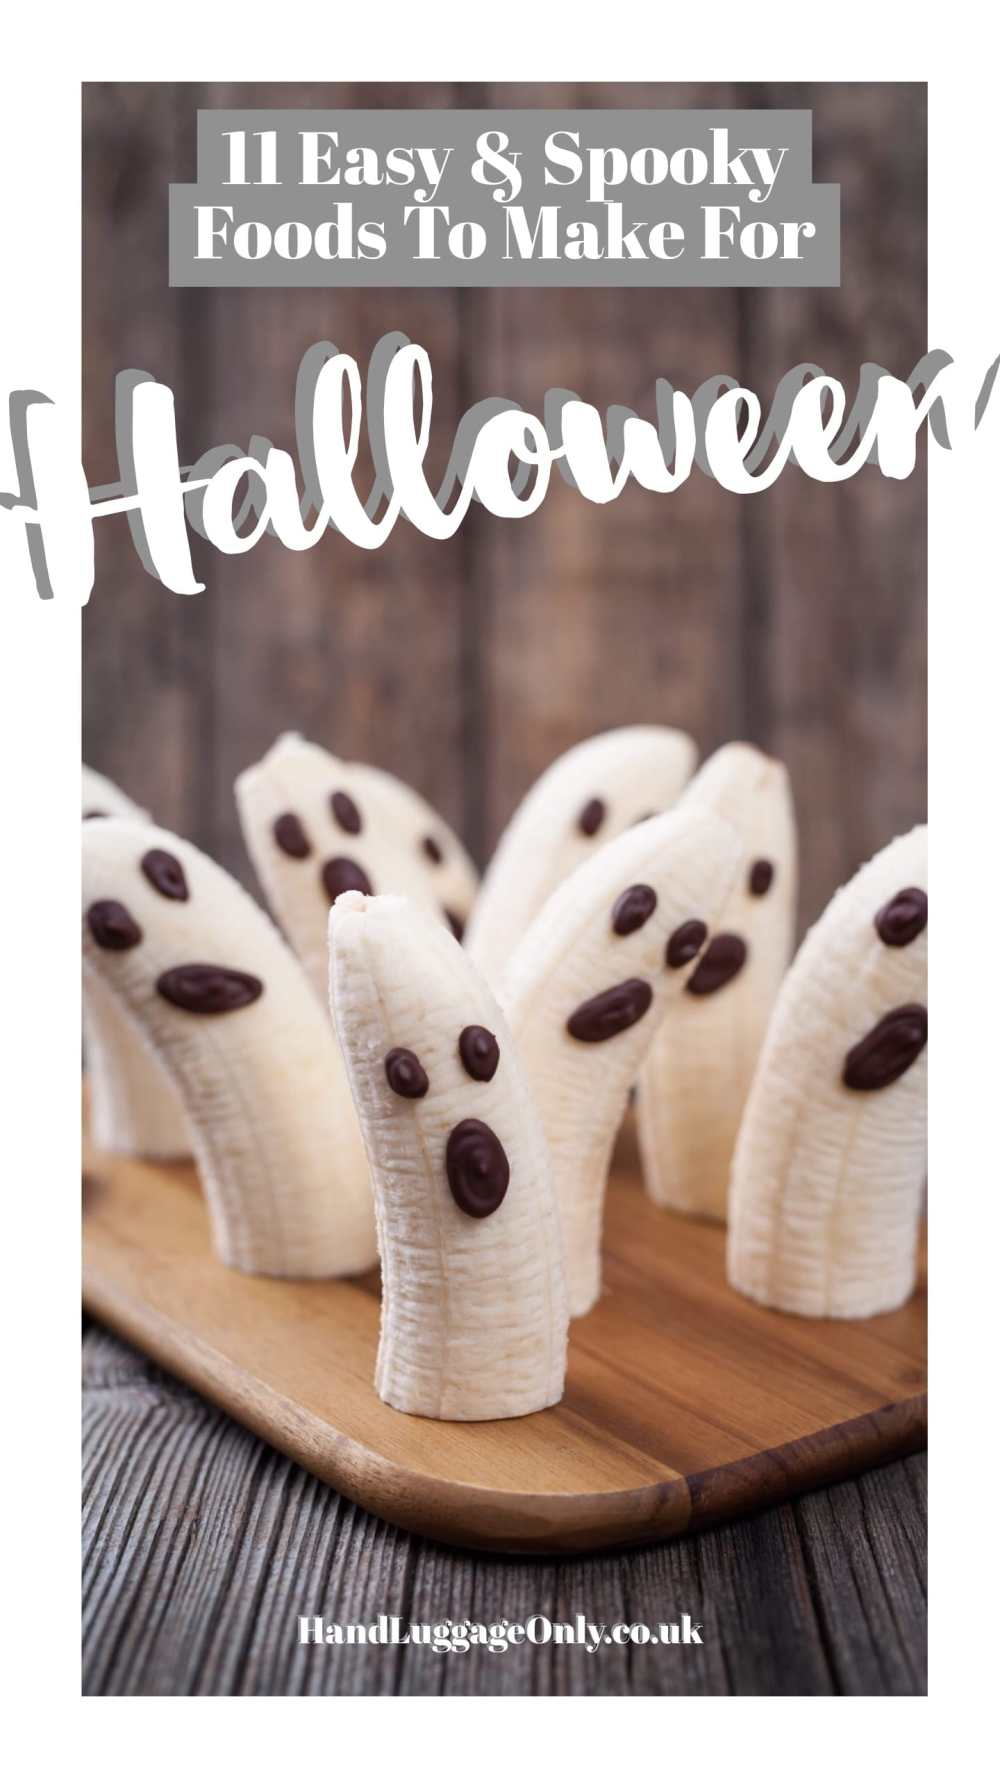 11 Spooky and Easy Foods To Make For Halloween (1)